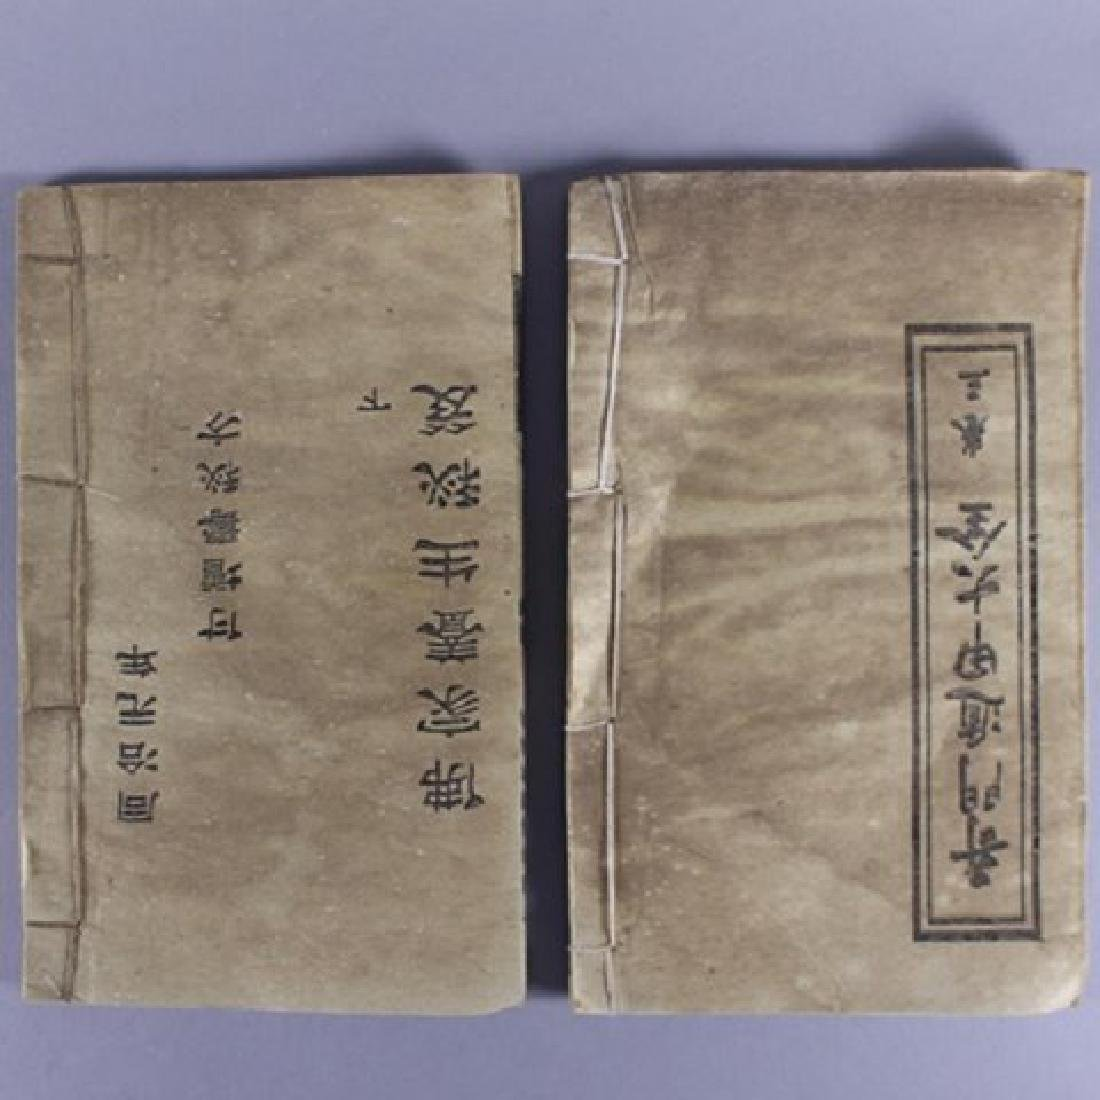 2 Chinese Old Style Books